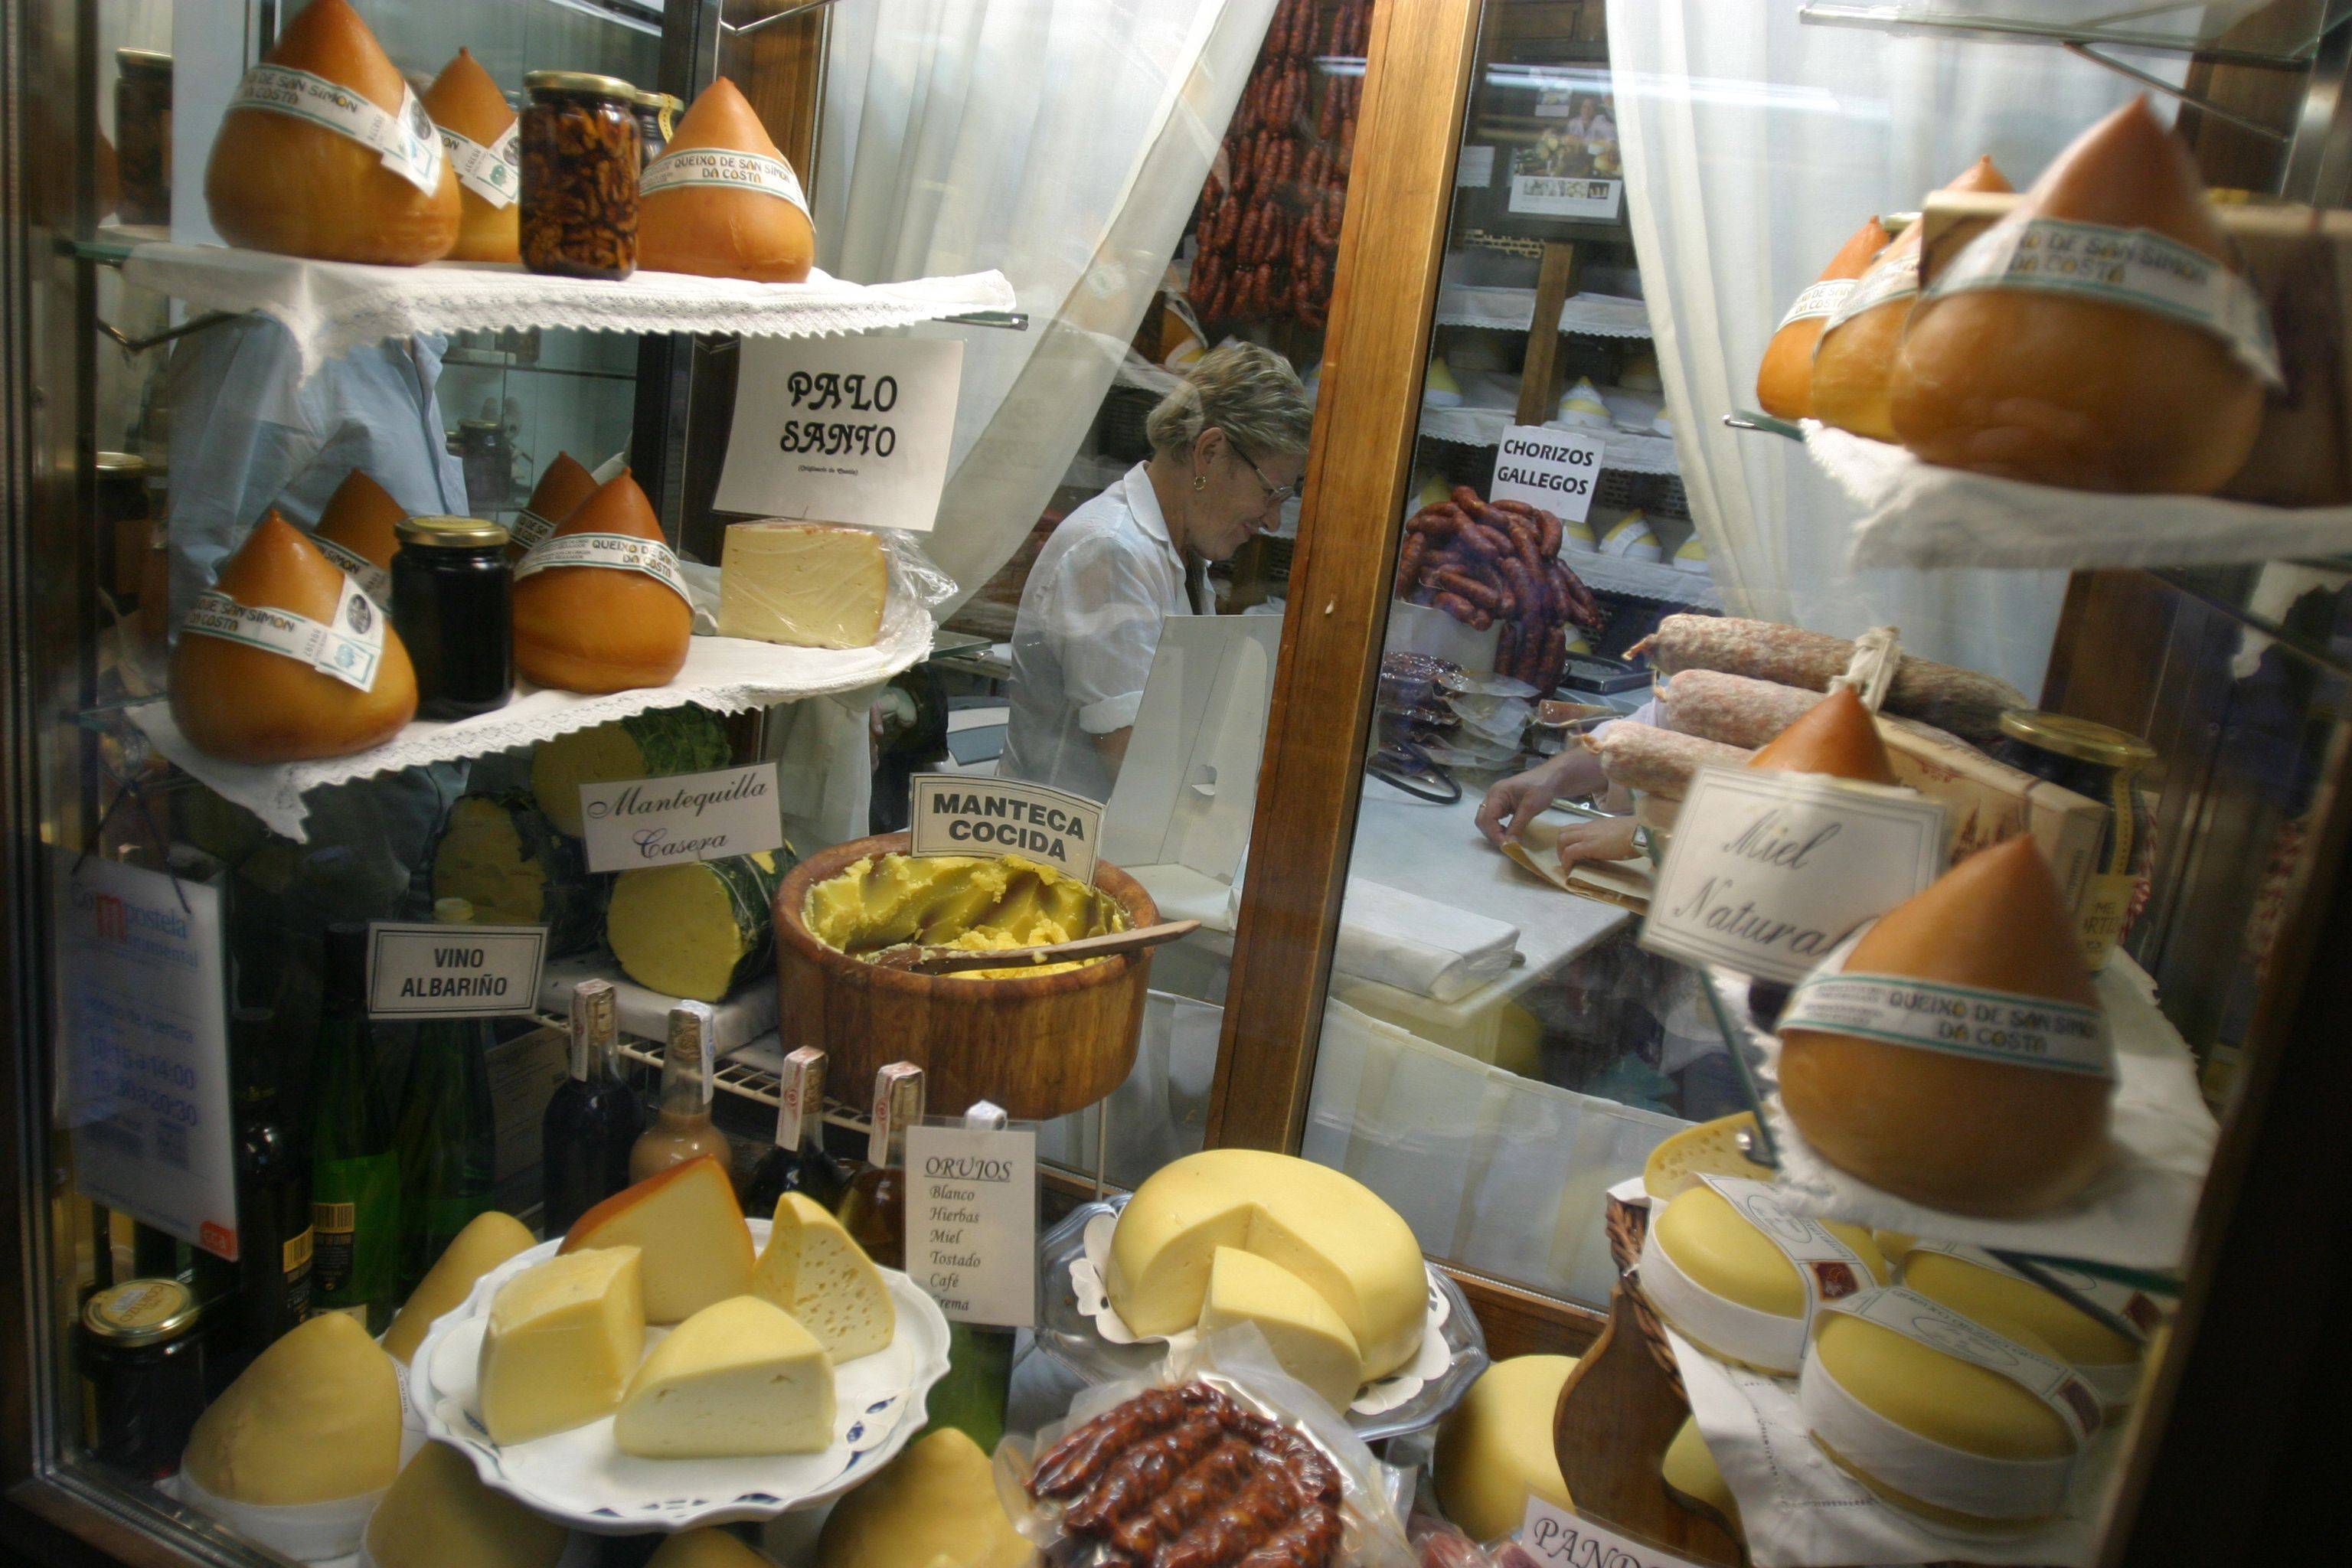 Quesos gallegos - Galician cheeses. | Cheese shop. Spanish food. Cheese